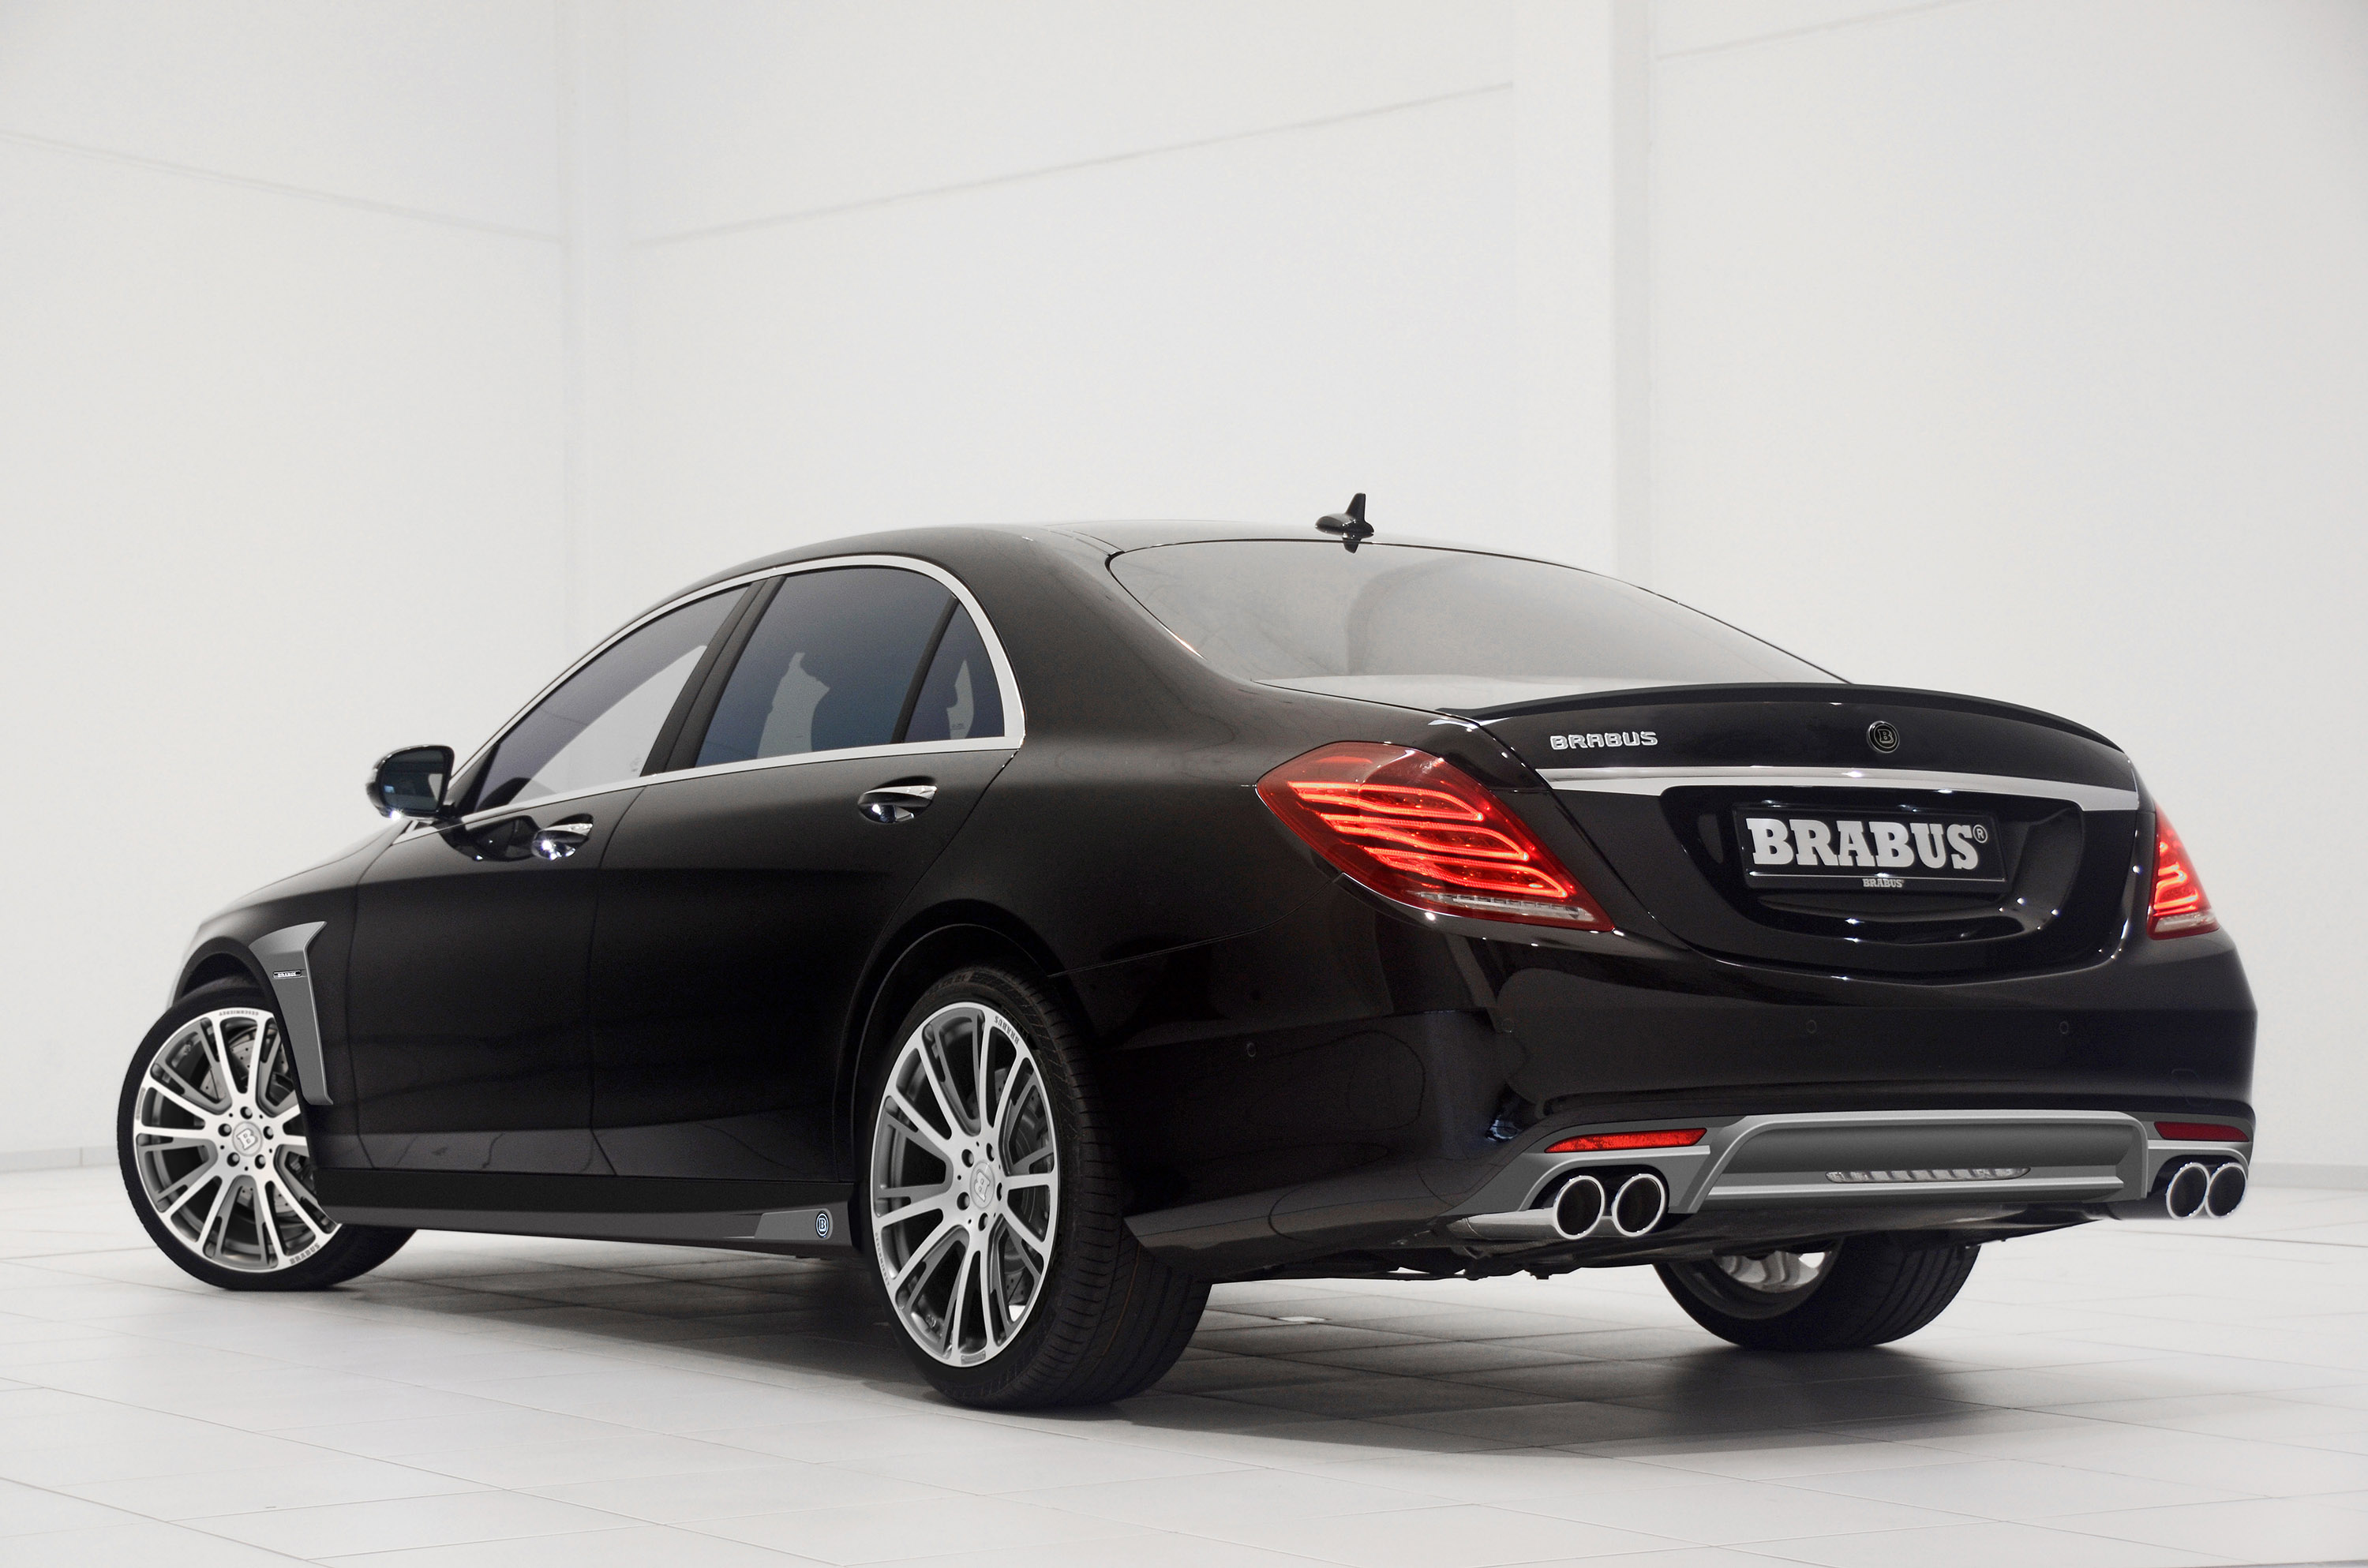 brabus 2014 mercedes benz s class powerful fast individual and exclusive. Black Bedroom Furniture Sets. Home Design Ideas